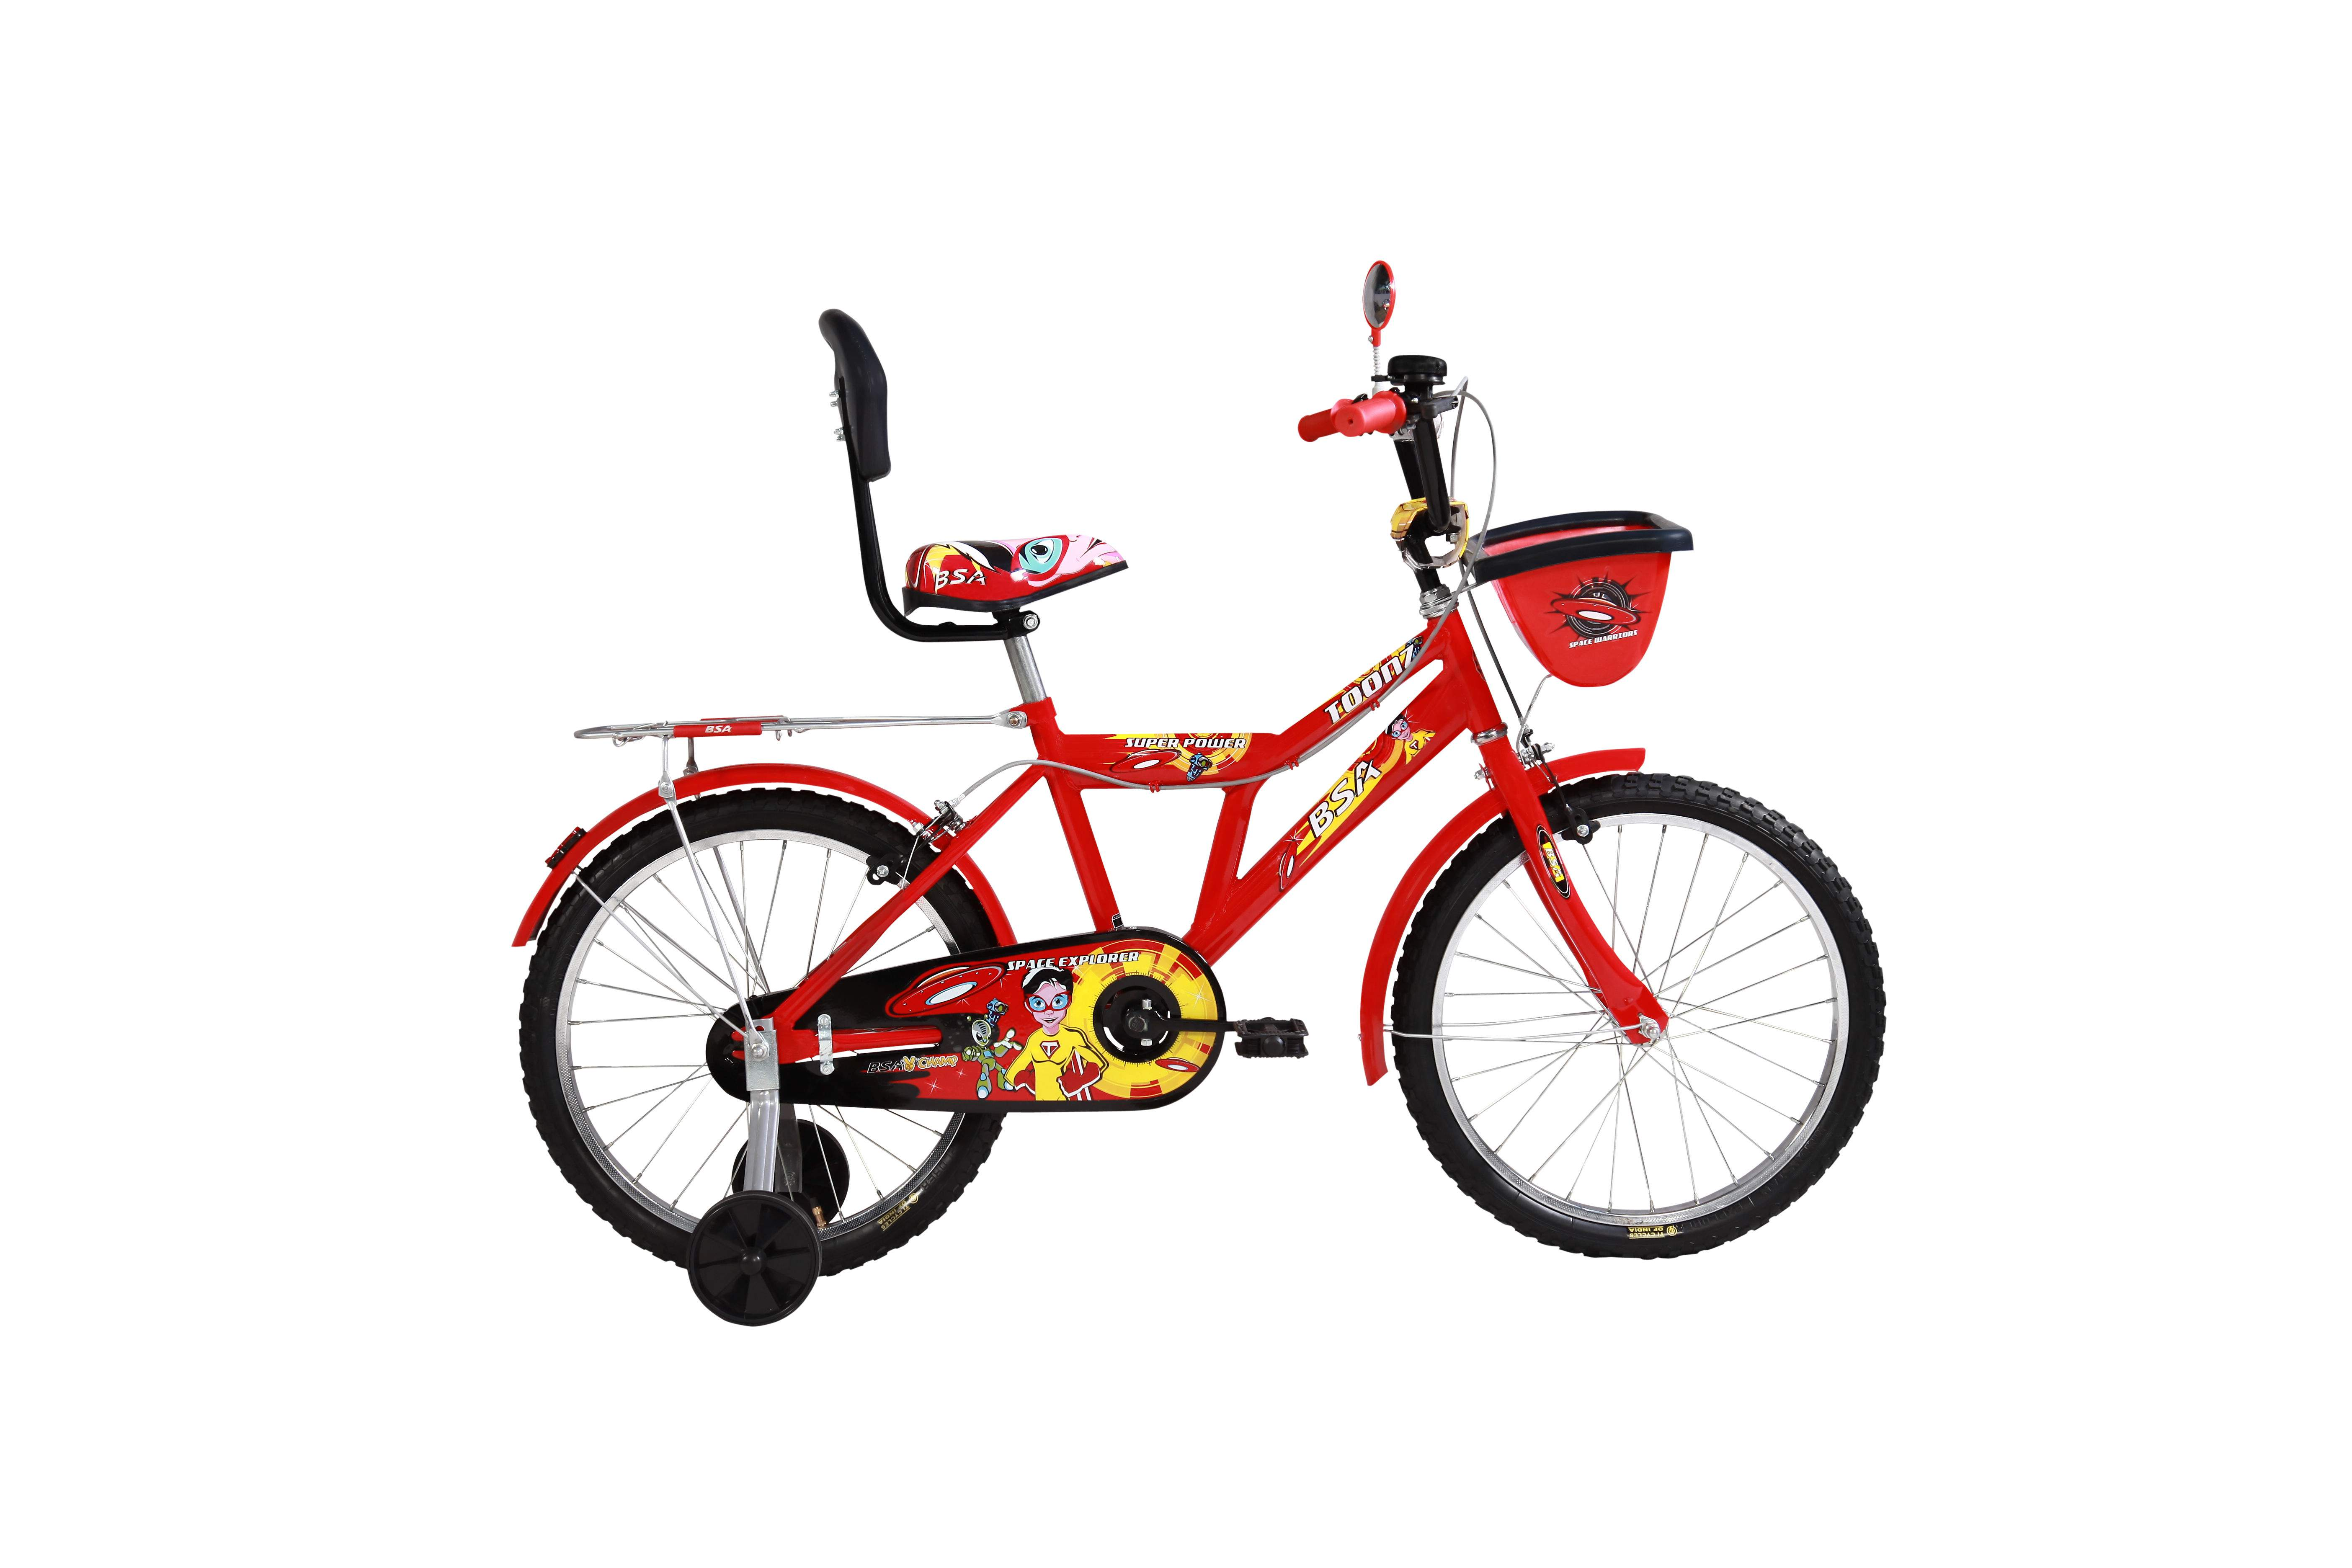 bsa champ toonz 16 2016 red with black